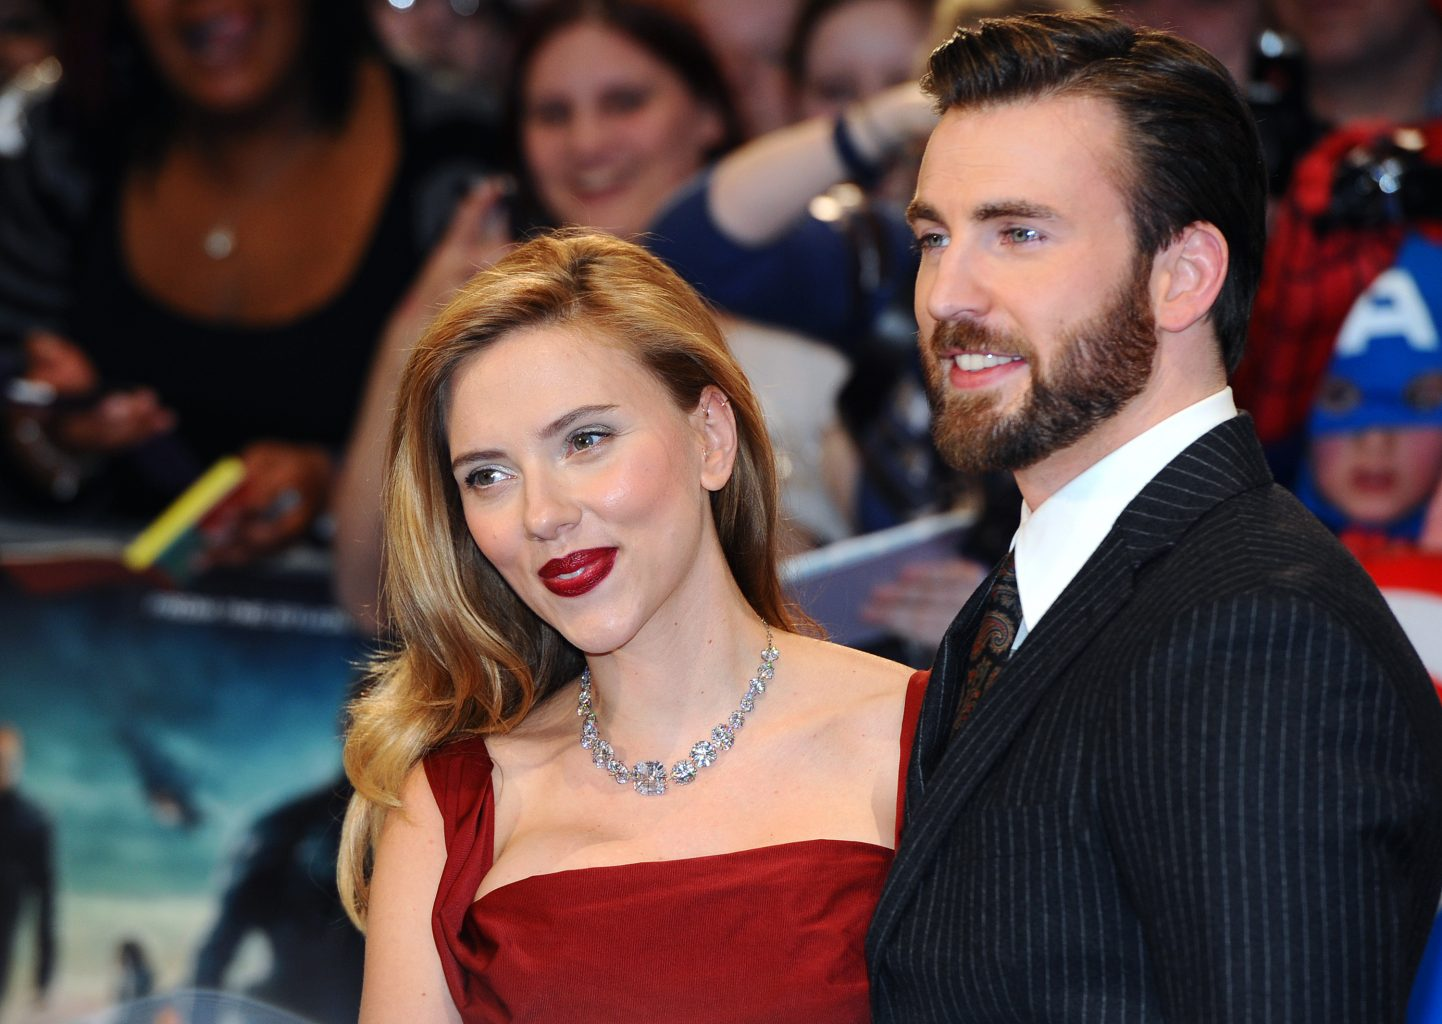 'Captain America: The Winter Soldier' - UK Film Premiere - Red Carpet Arrivals